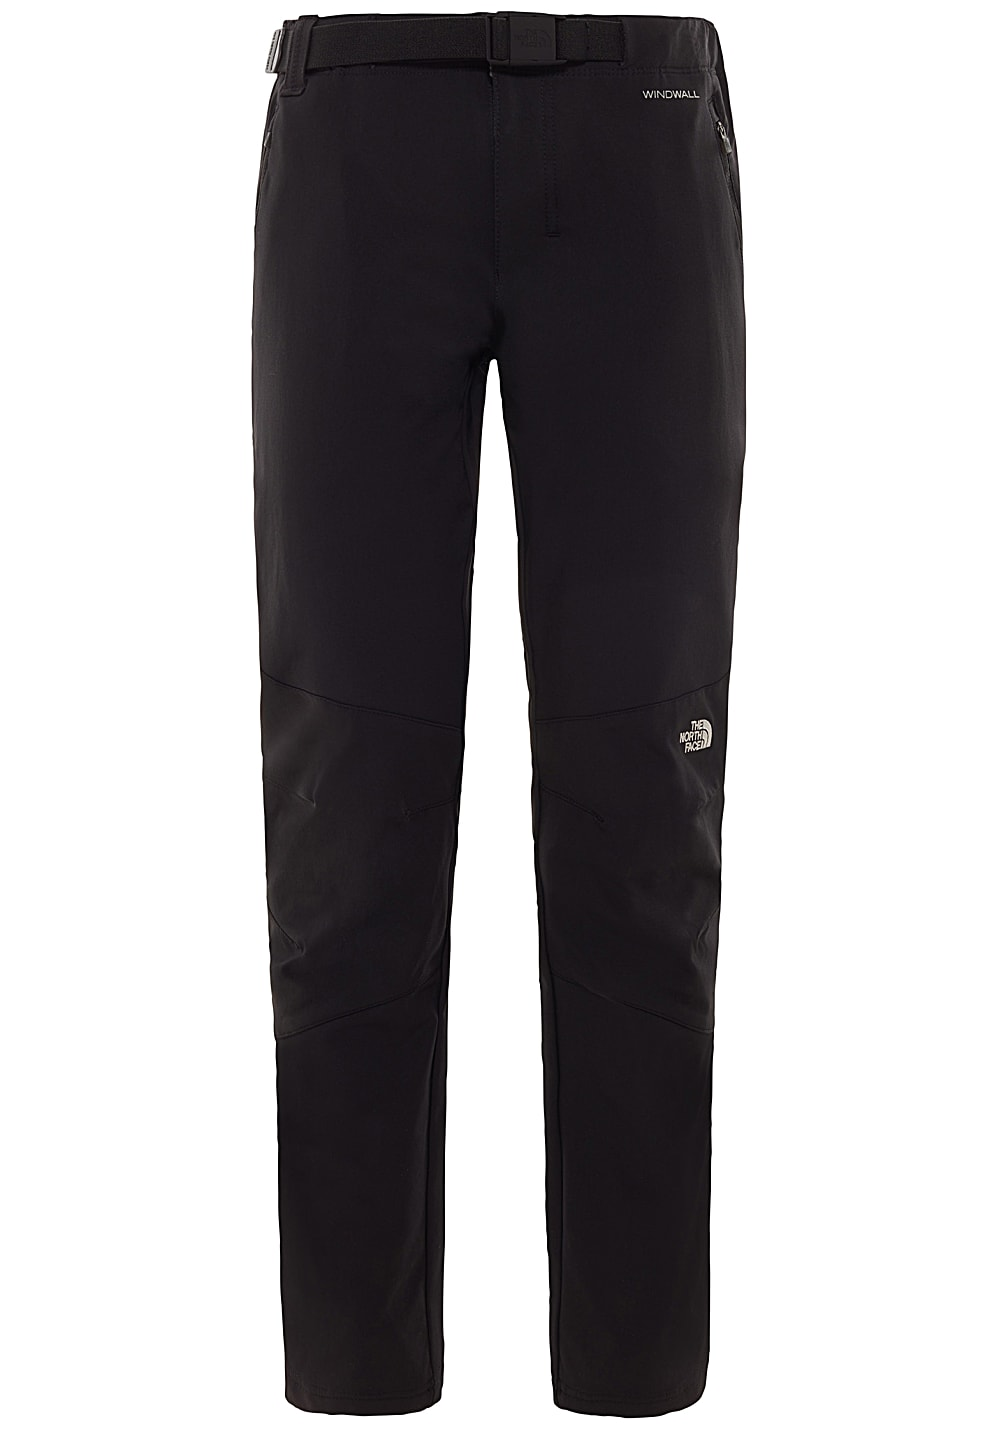 THE NORTH FACE Diablo - Outdoorhose für Damen - Schwarz